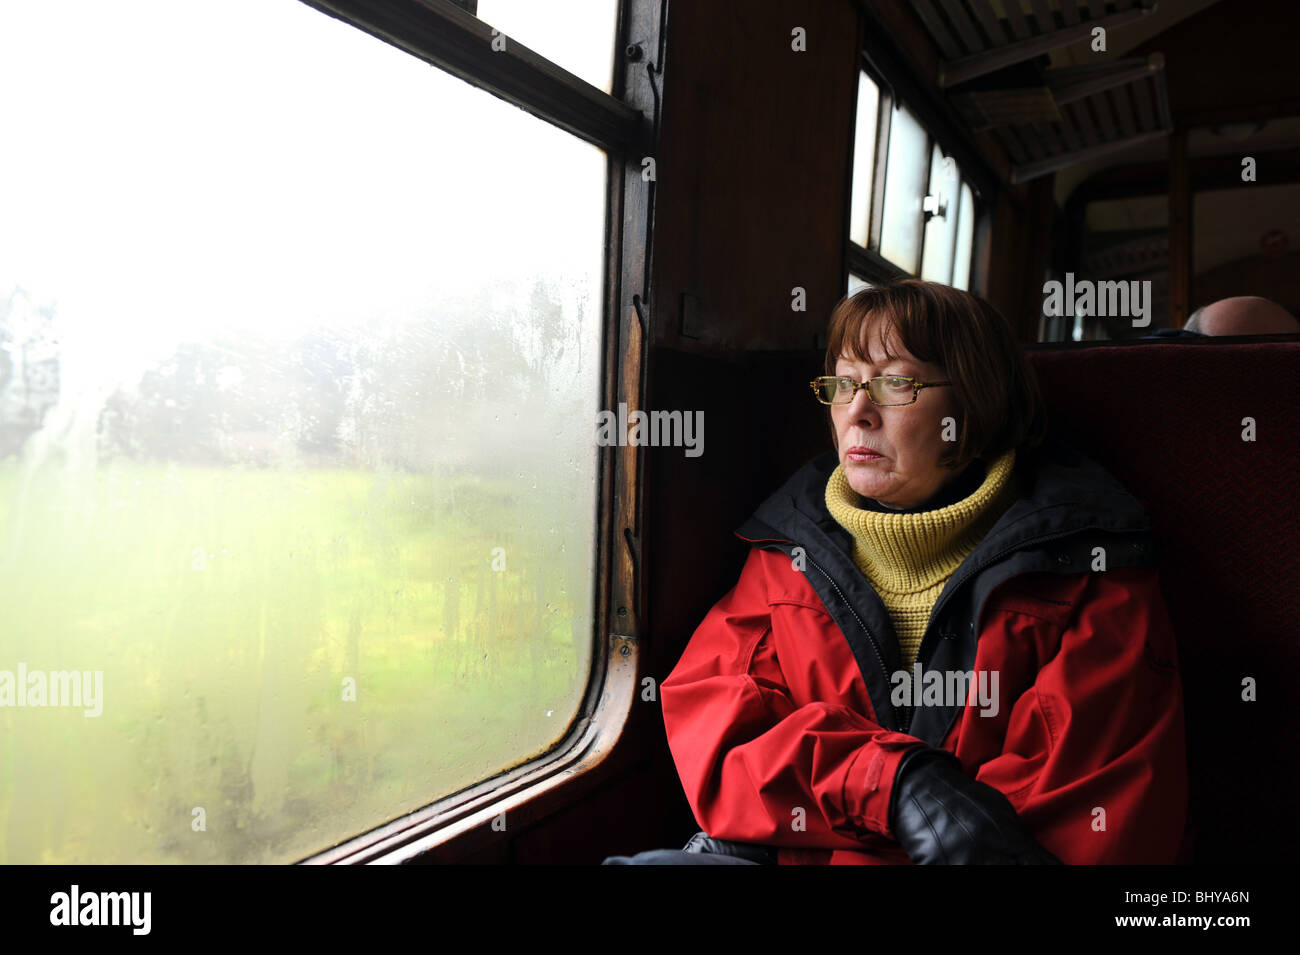 Female train passenger staring out of the window Stock Photo